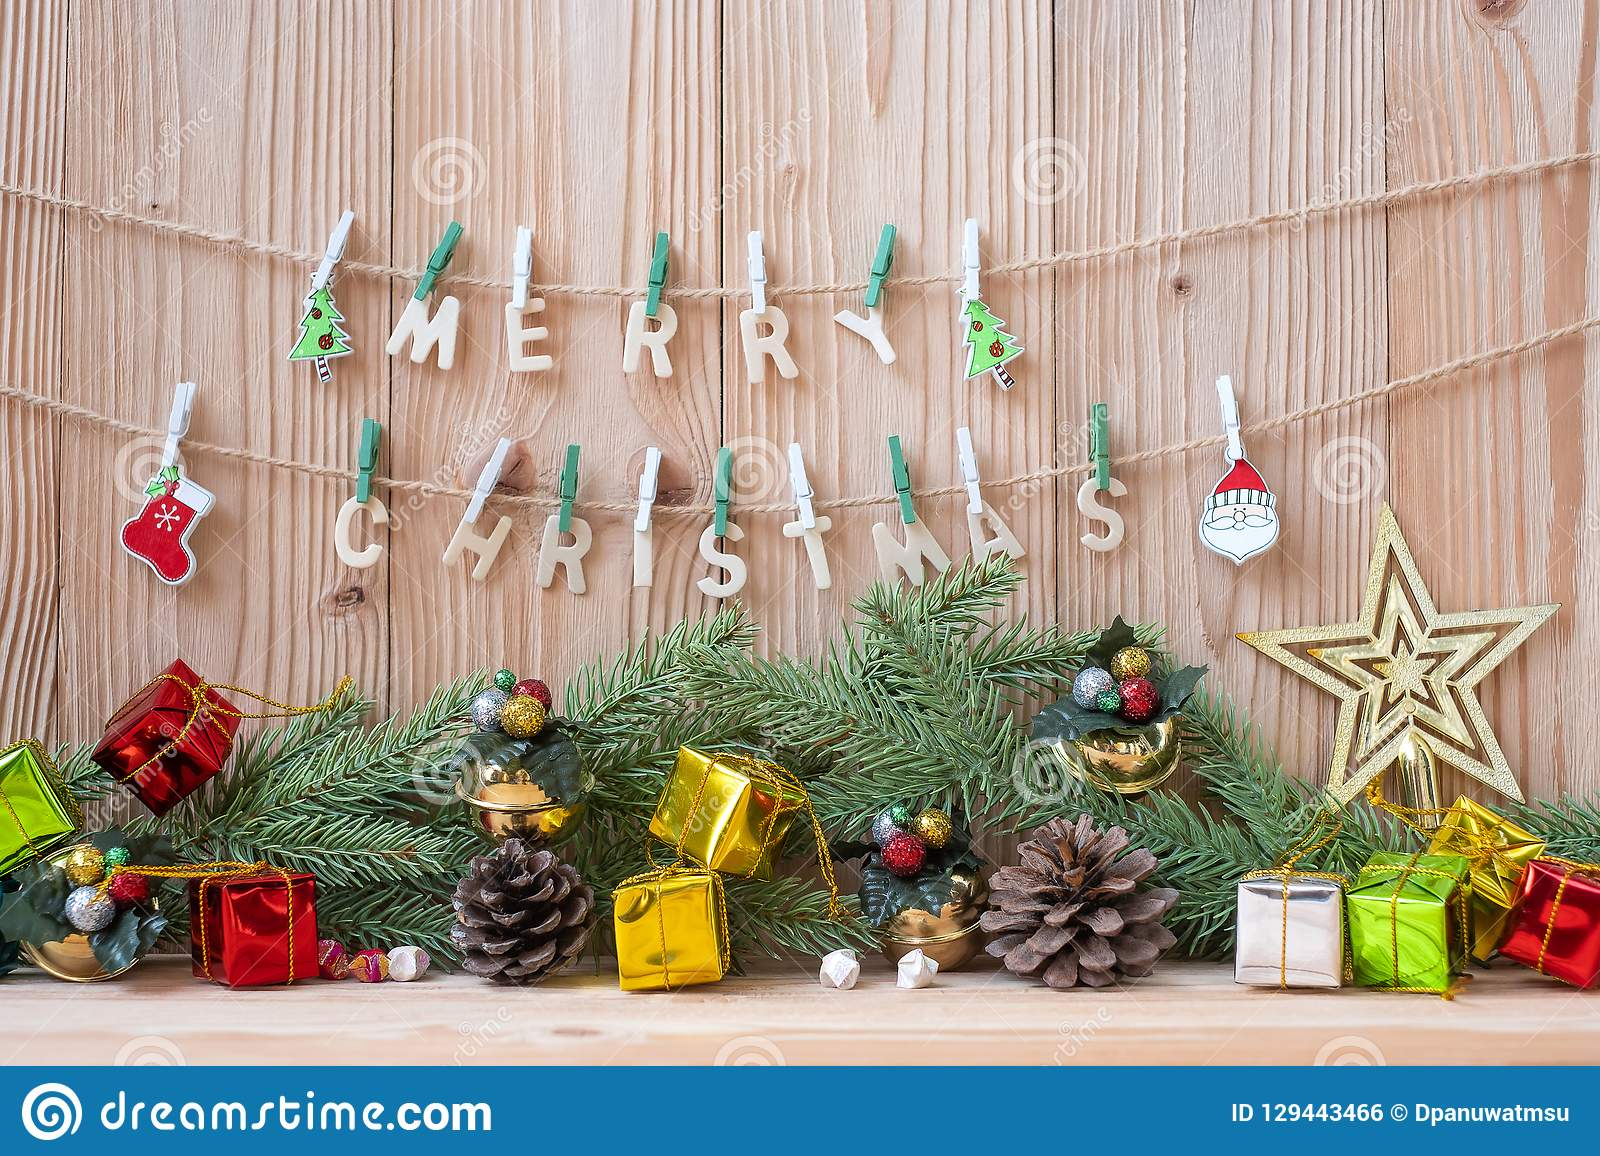 Merry Christmas decoration party preparation for holiday concept, Happy New Year